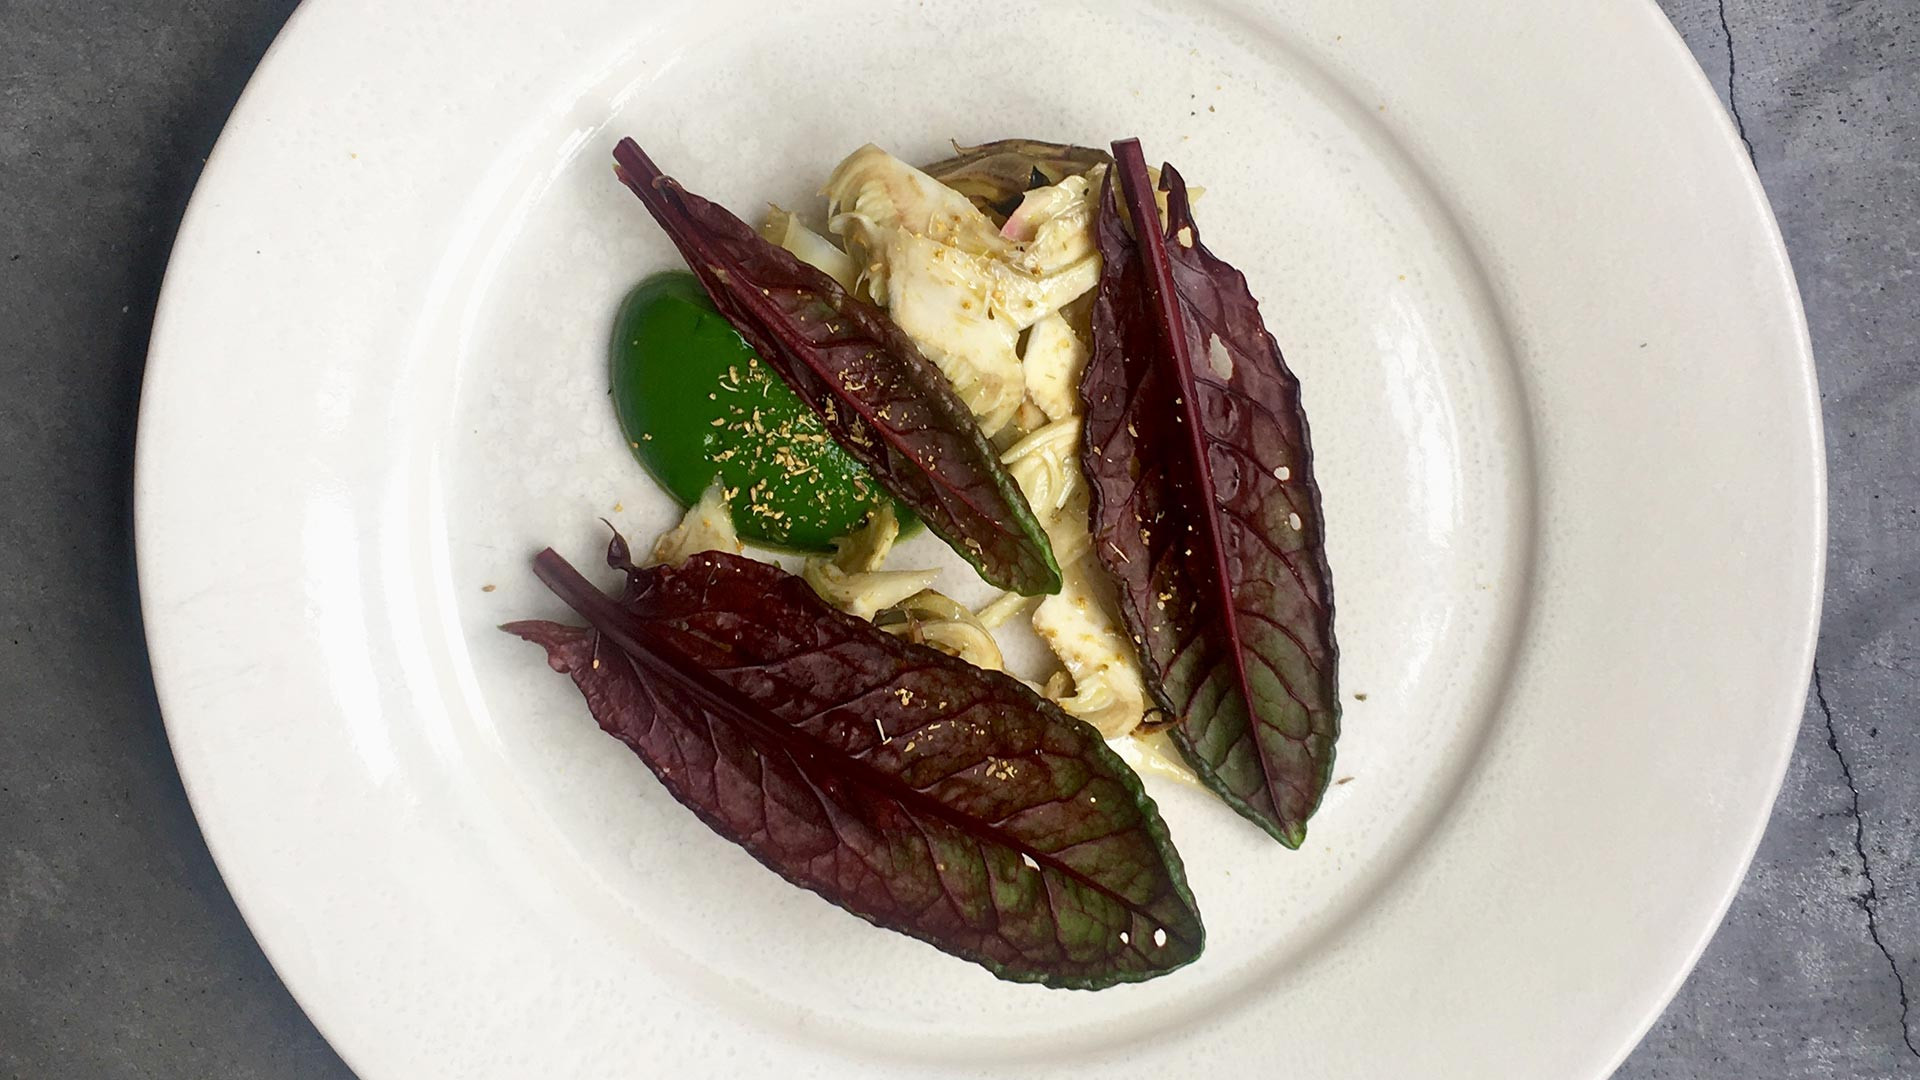 Artichokes, nettles and sorrel at award-winning Lyle's restaurant